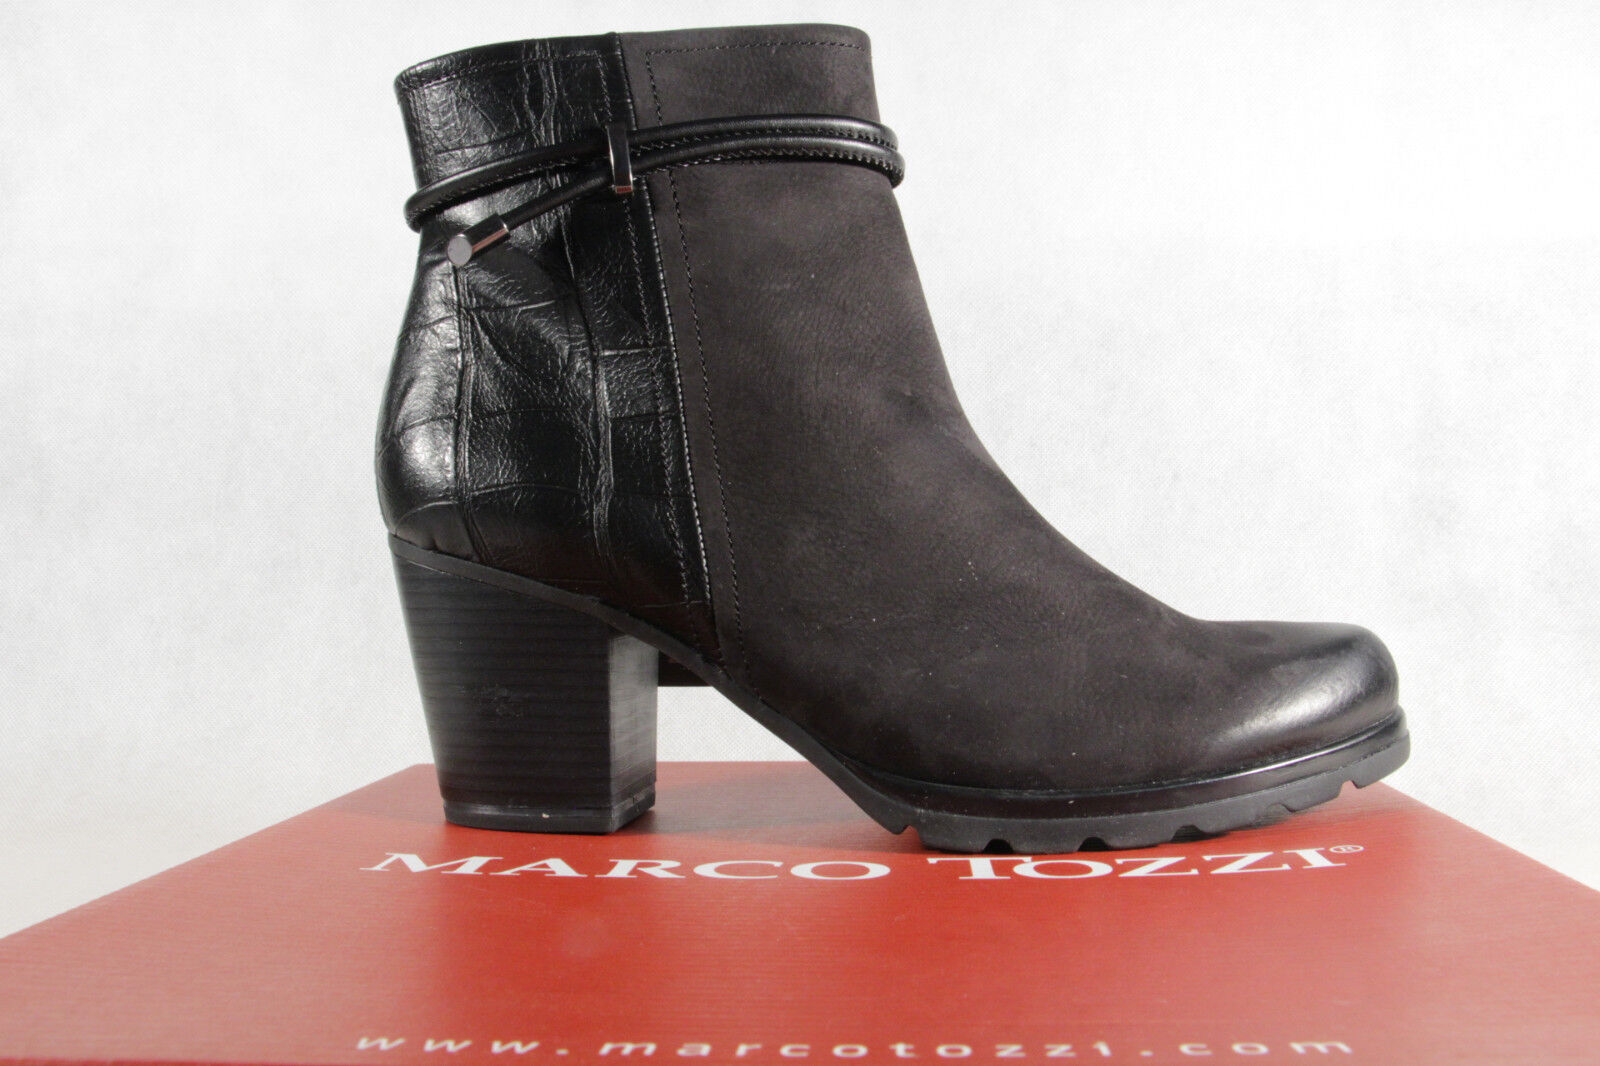 MARCO TOZZI Ankle Boot Boots, Black, Leather 25454 NEW